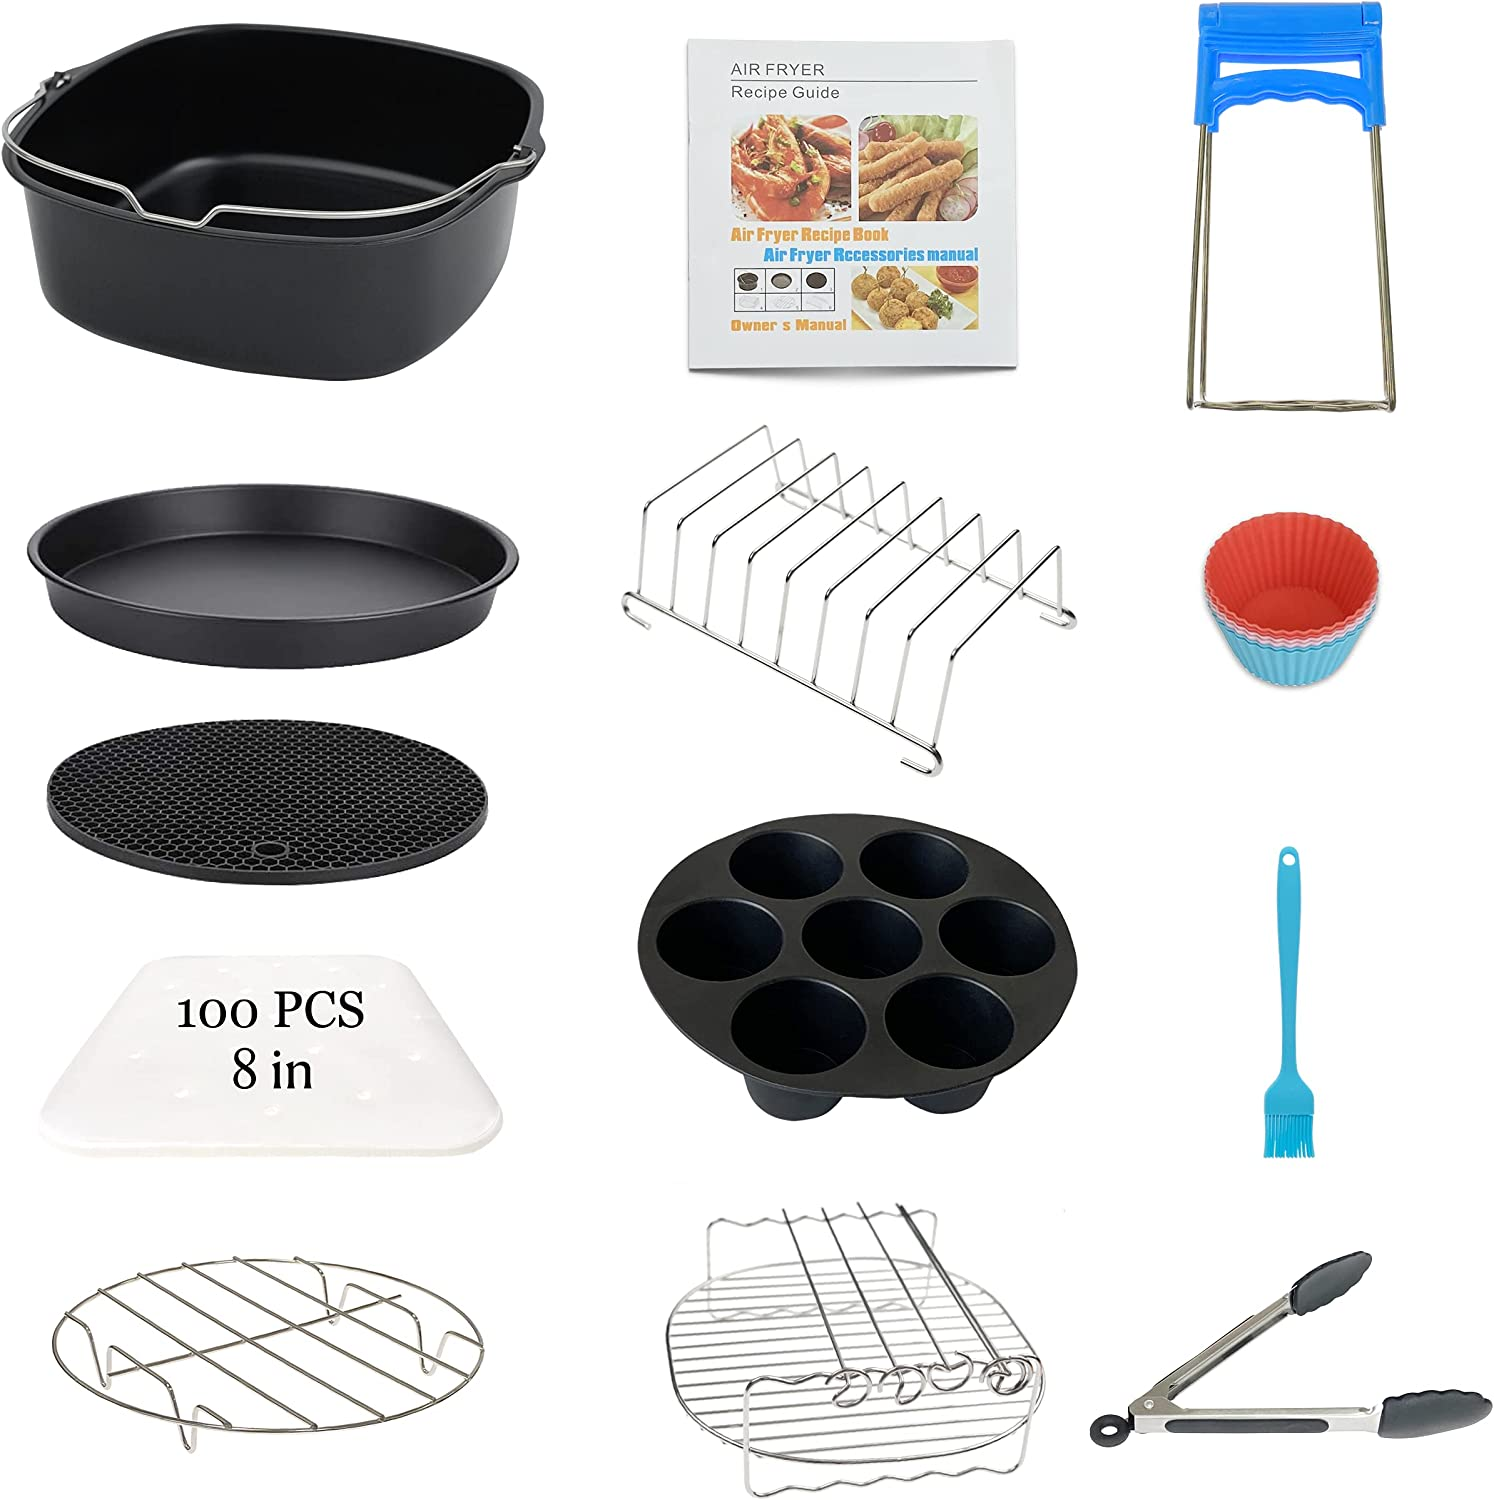 13PCS Air Fryer Accessories for Cosori Instant Vortex Phillips Gowise Ninja Air Fryer, Fit 3.2-4.0-5.8QT Square Air Fryer with Cake Pan, Pizza Pan, Silicone Baking Cups, Skewer Rack, Parchment Paper